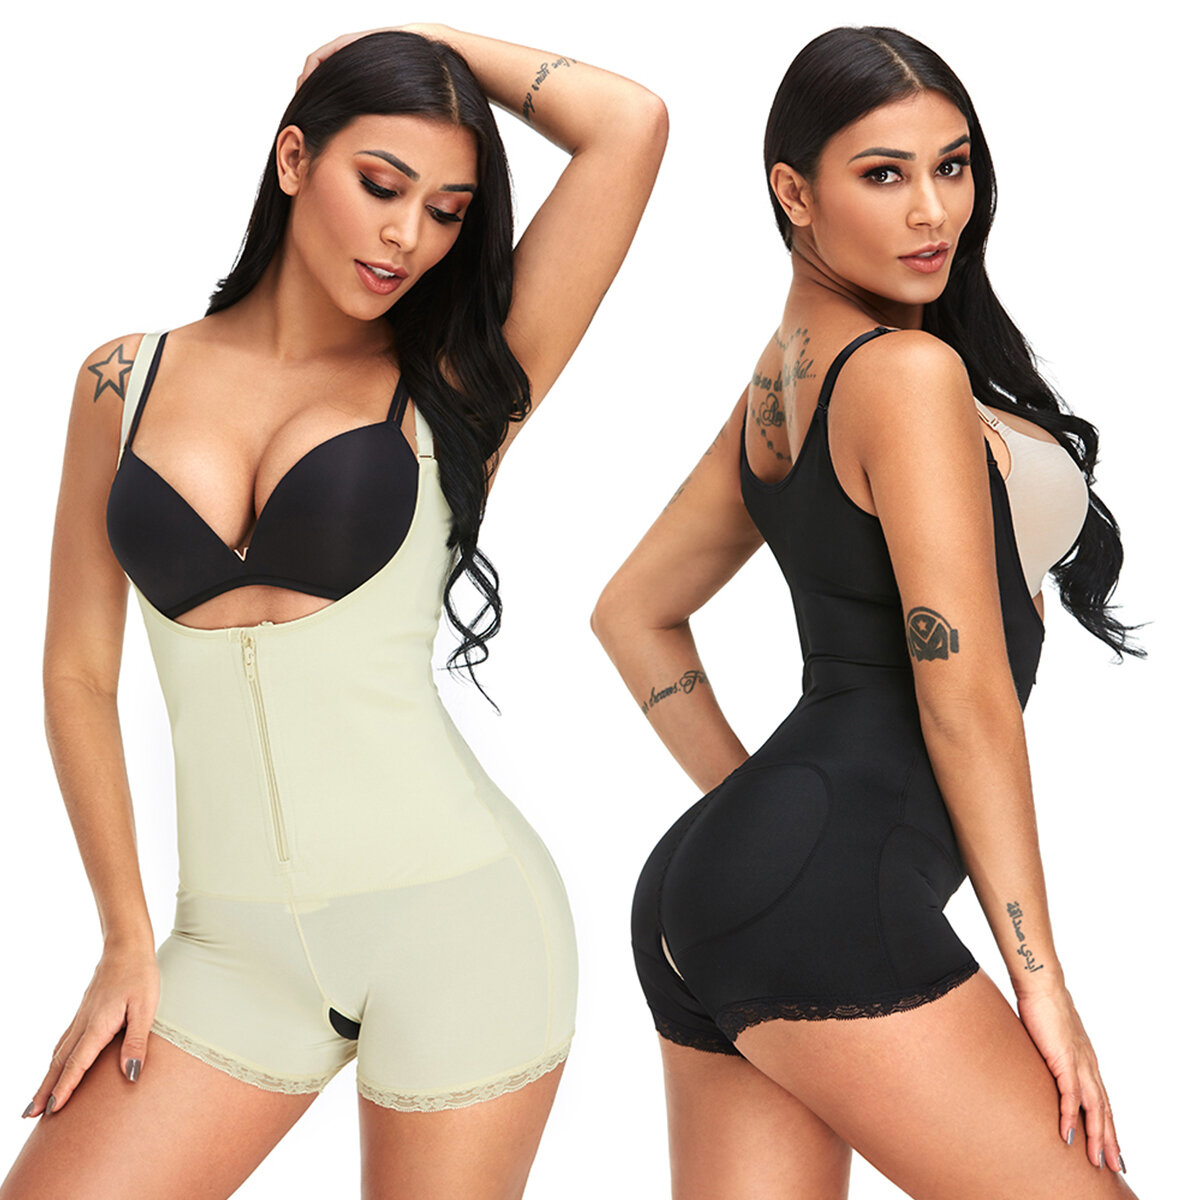 1282afccd79 Women Body-Shaping Clothes Girdles for Belly Reducing Shapewear Firm  Control Abdomen Waist Support Trainer Slimming Girdle Belt - Black S COD